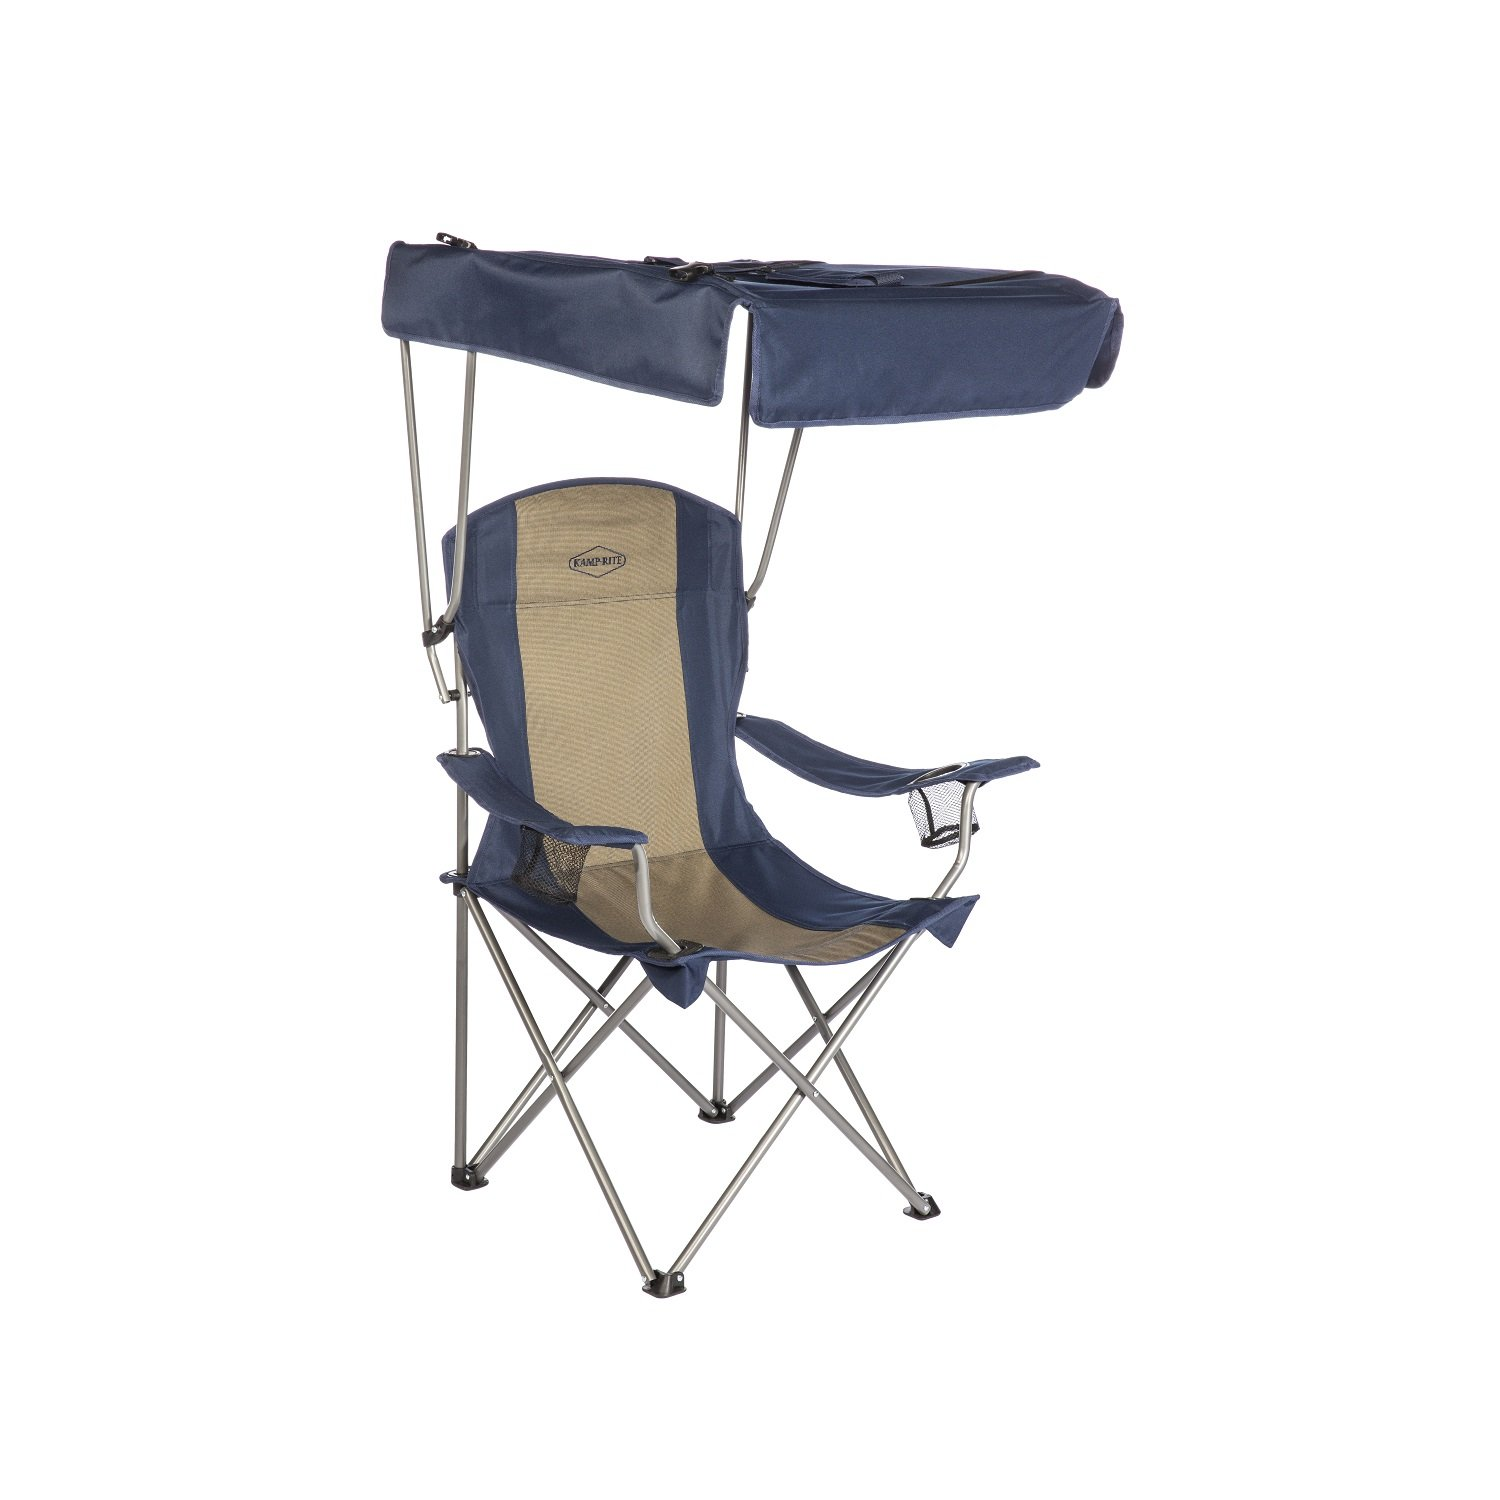 sc 1 st  Amazon.com & Amazon.com: Kamp-Rite Chair with Shade Canopy: Sports u0026 Outdoors